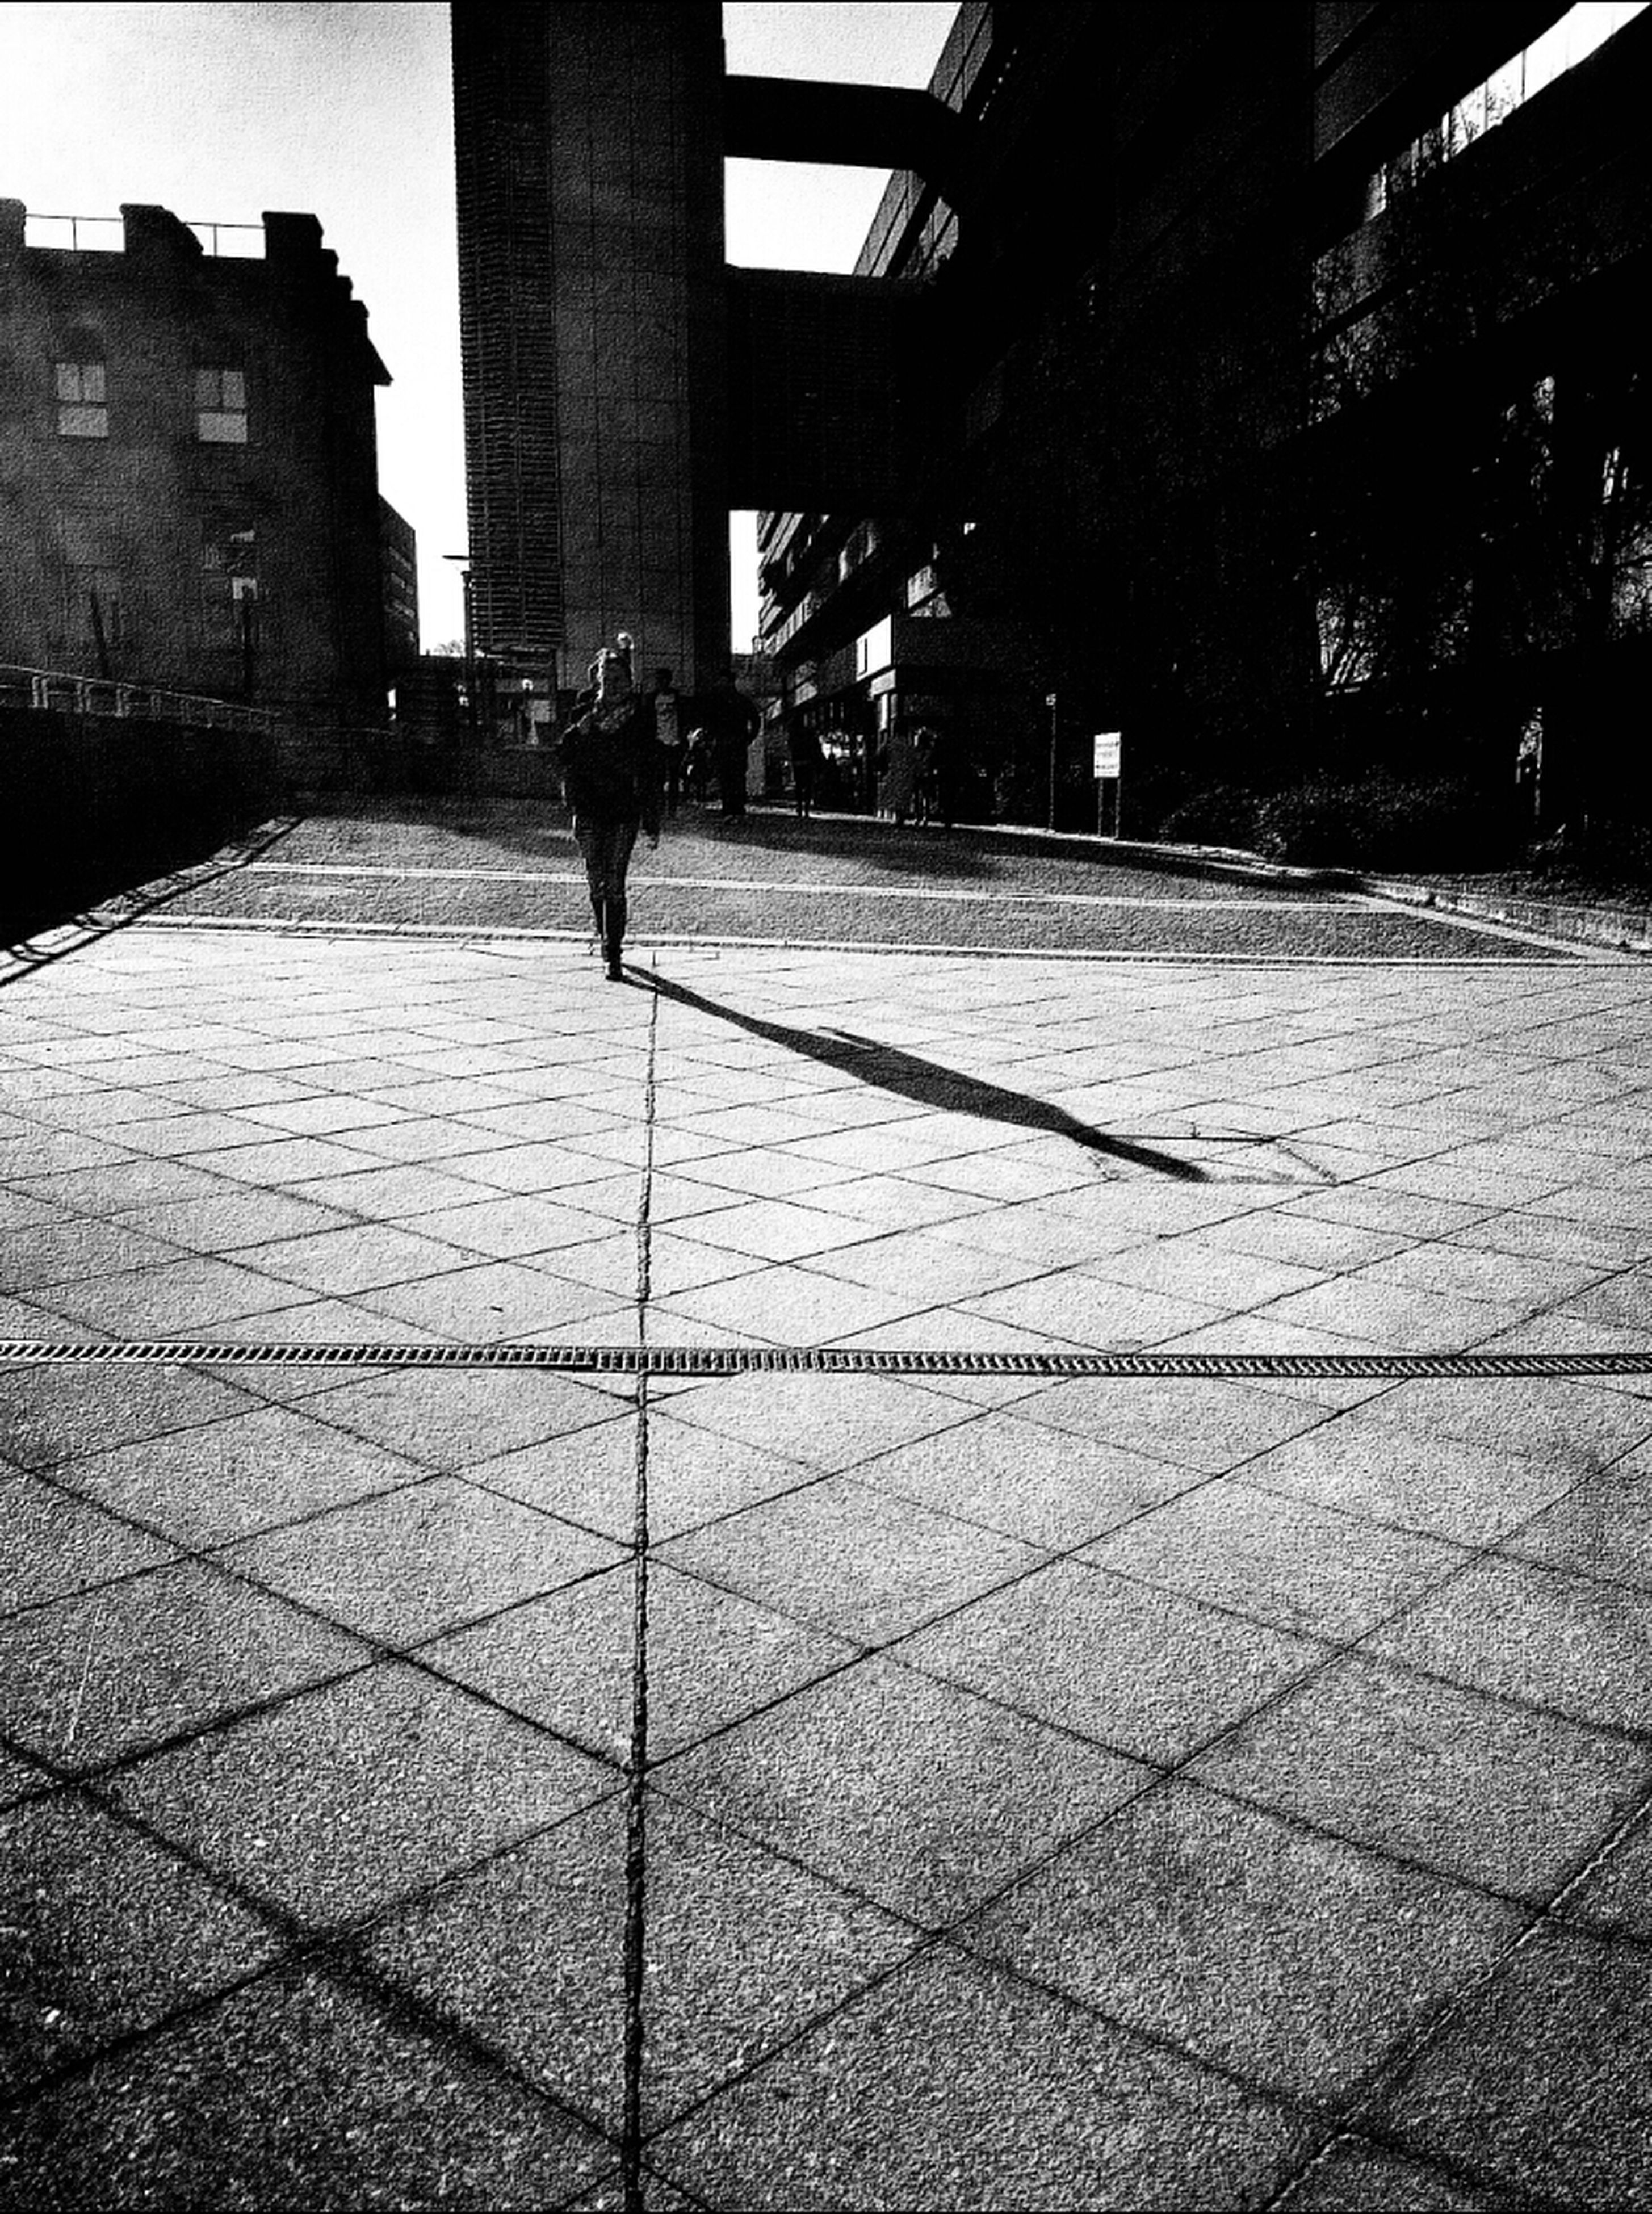 architecture, built structure, building exterior, walking, lifestyles, shadow, cobblestone, men, leisure activity, the way forward, person, sunlight, full length, paving stone, footpath, walkway, street, city